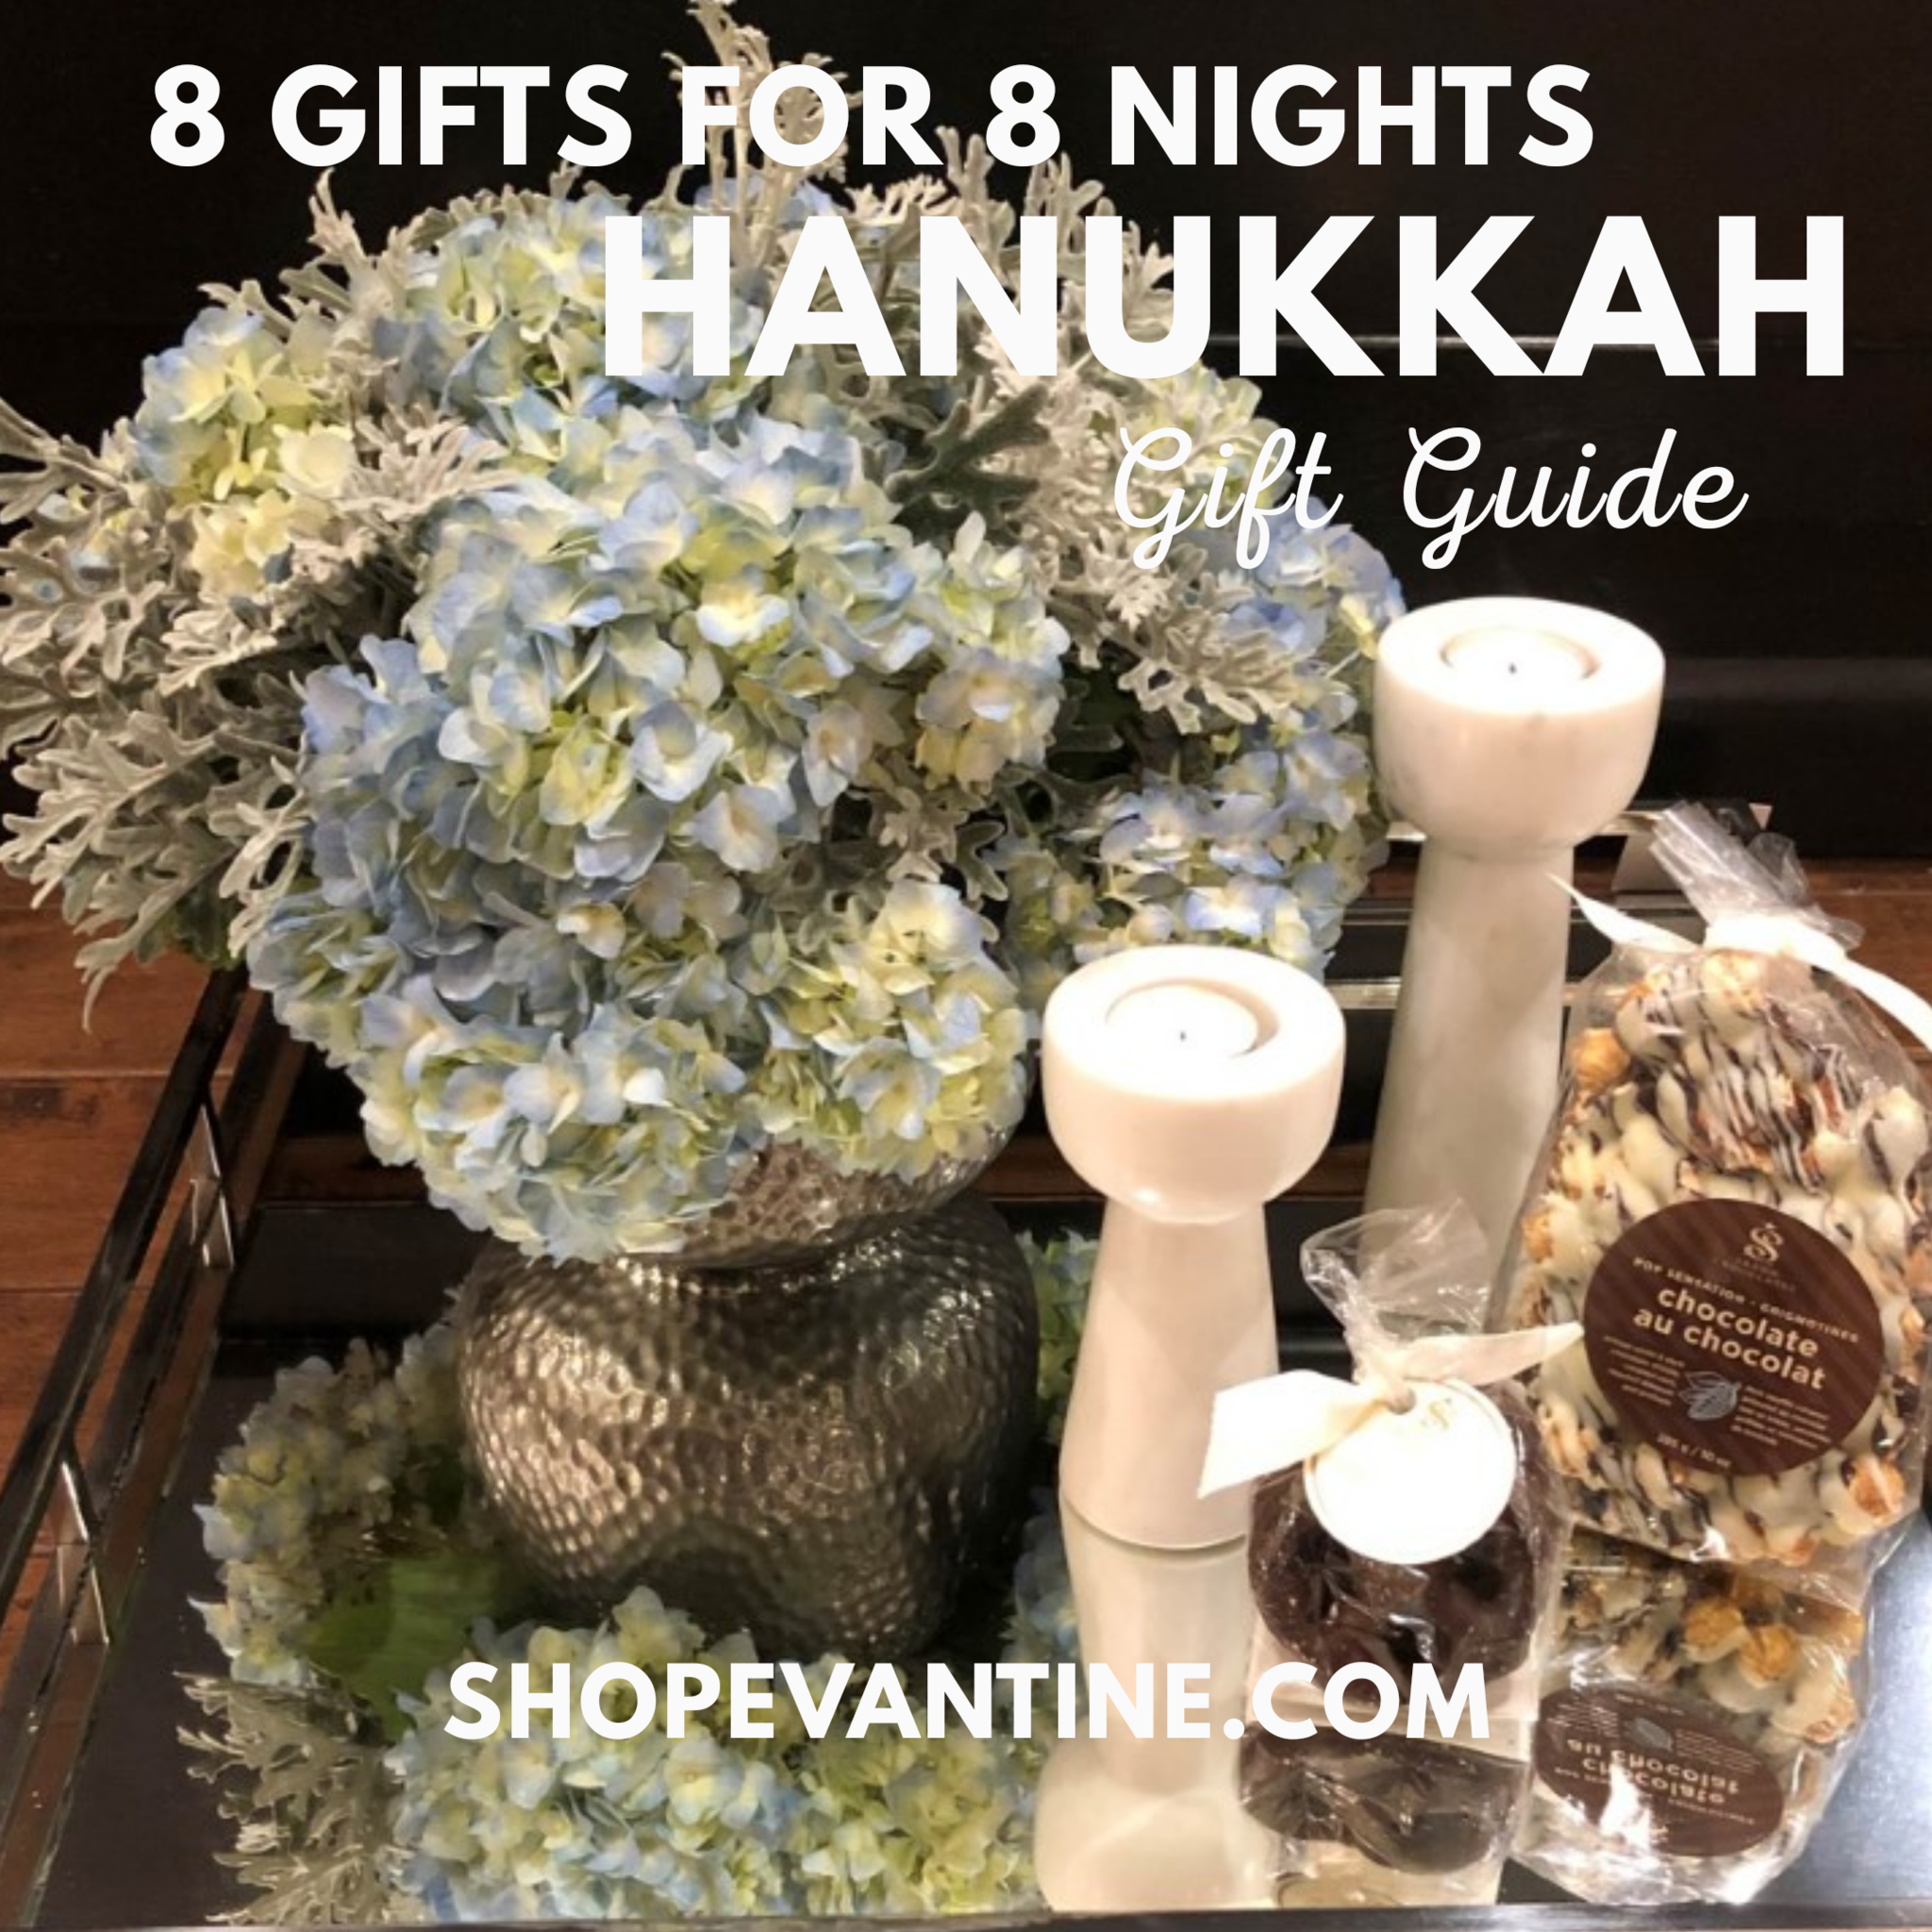 Hanukkah Gift Guide: 8 Gifts for 8 Nights